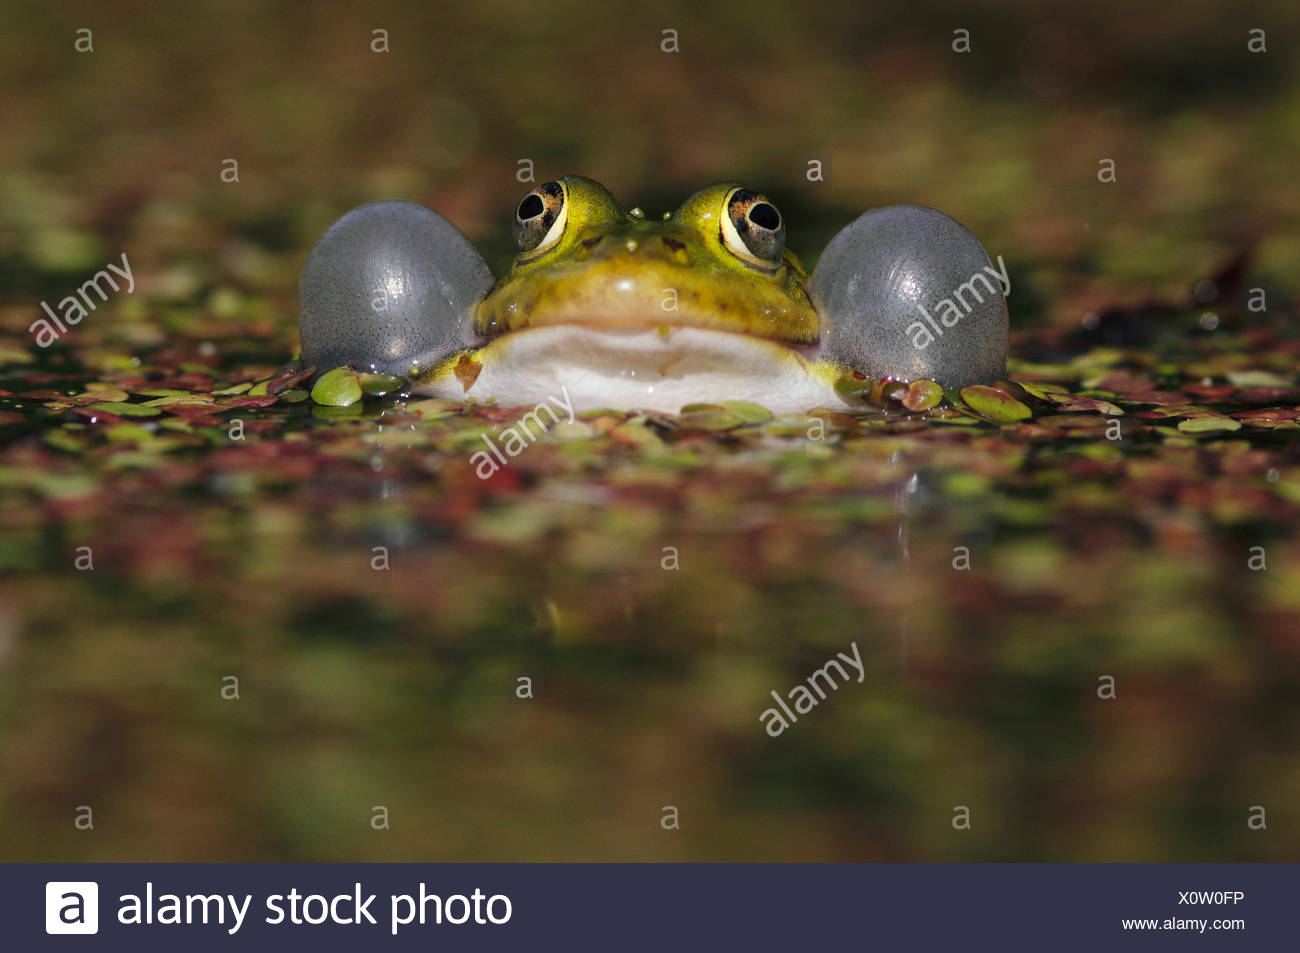 Croaking green frog in a ditch with duckweed - Stock Image